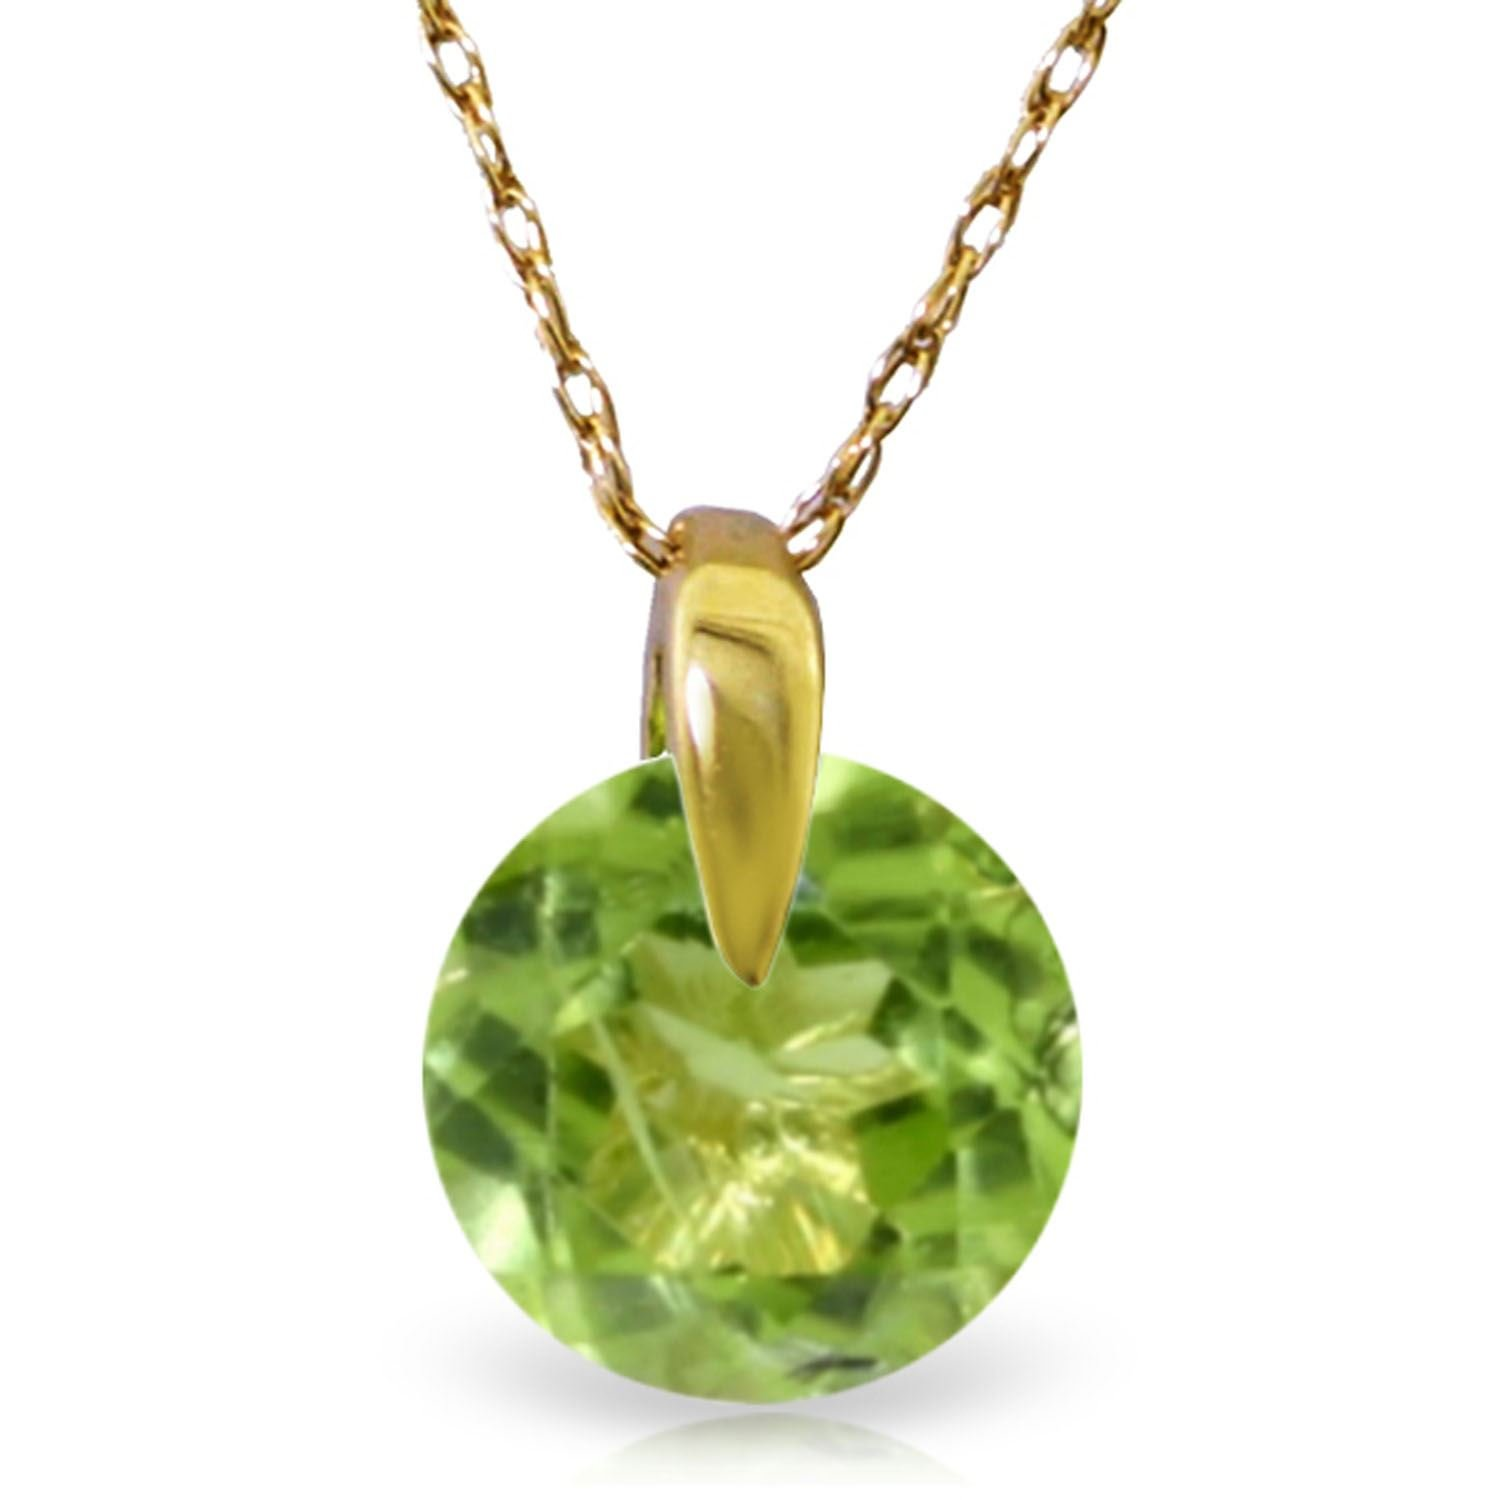 ALARRI 1 Carat 14K Solid Gold Wonders Of Love Peridot Necklace with 24 Inch Chain Length